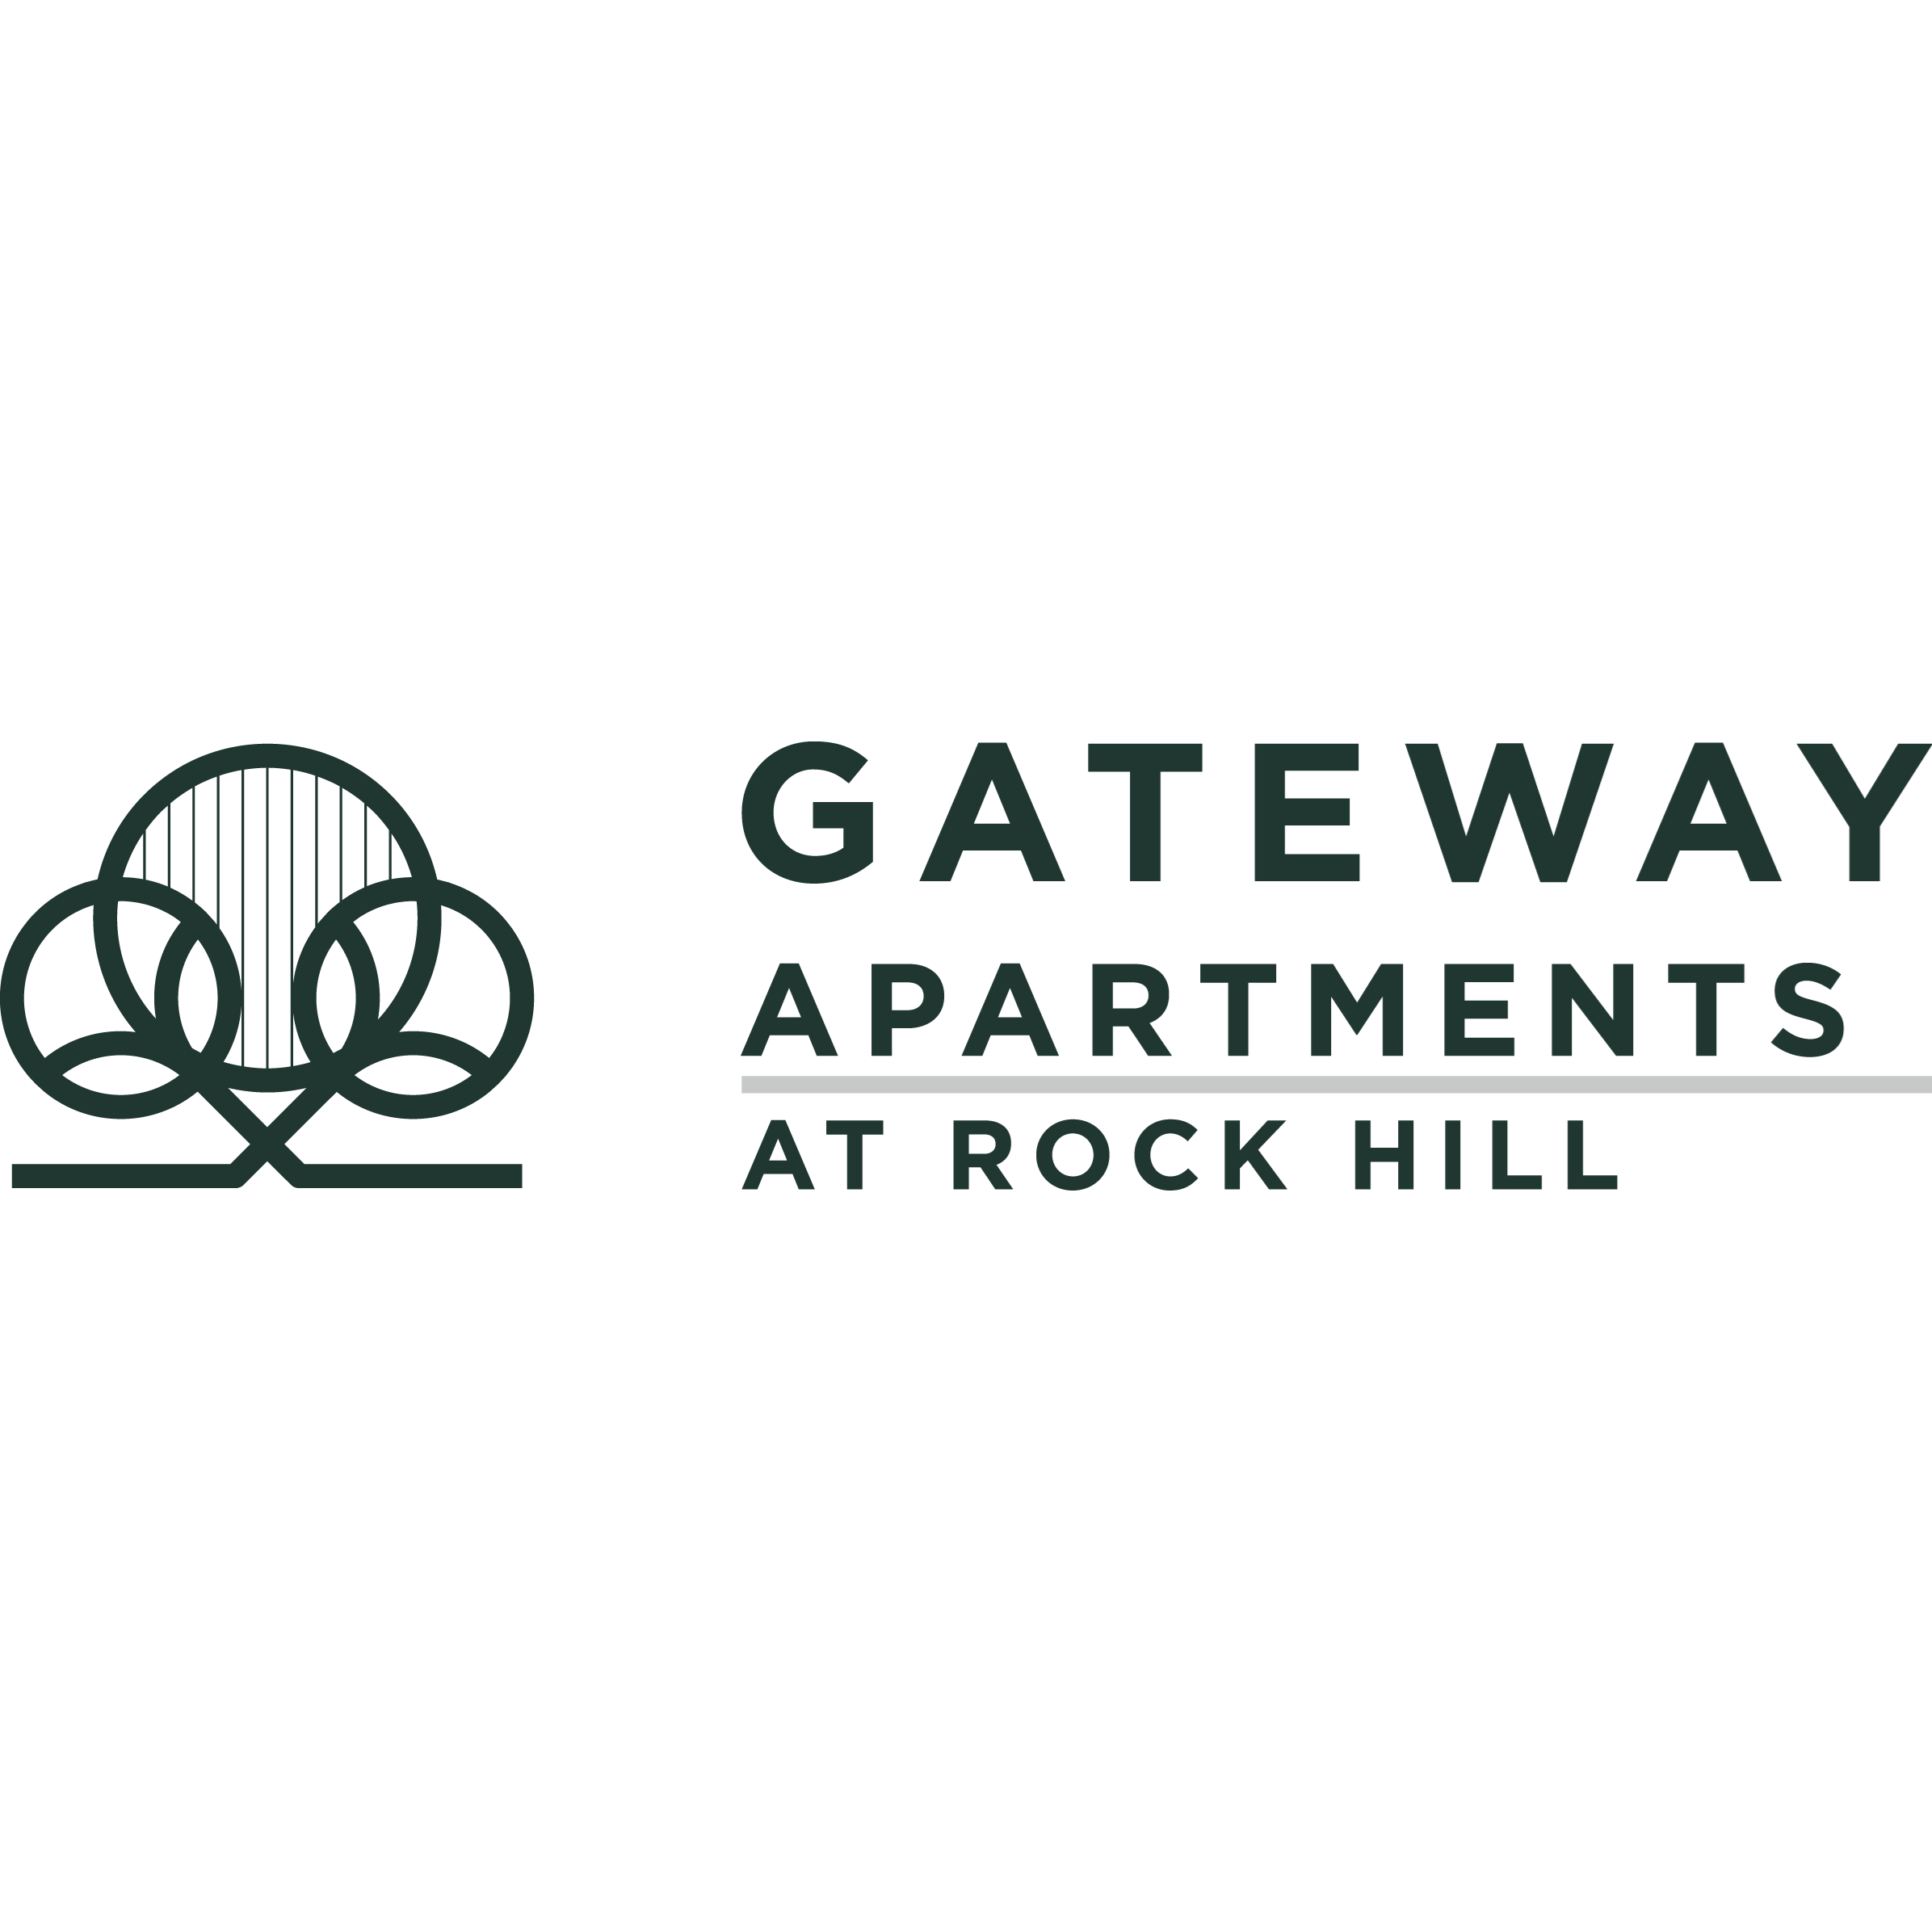 Brookstone Apartments Rock Hill Sc: Business Directory For Rock Hill, SC